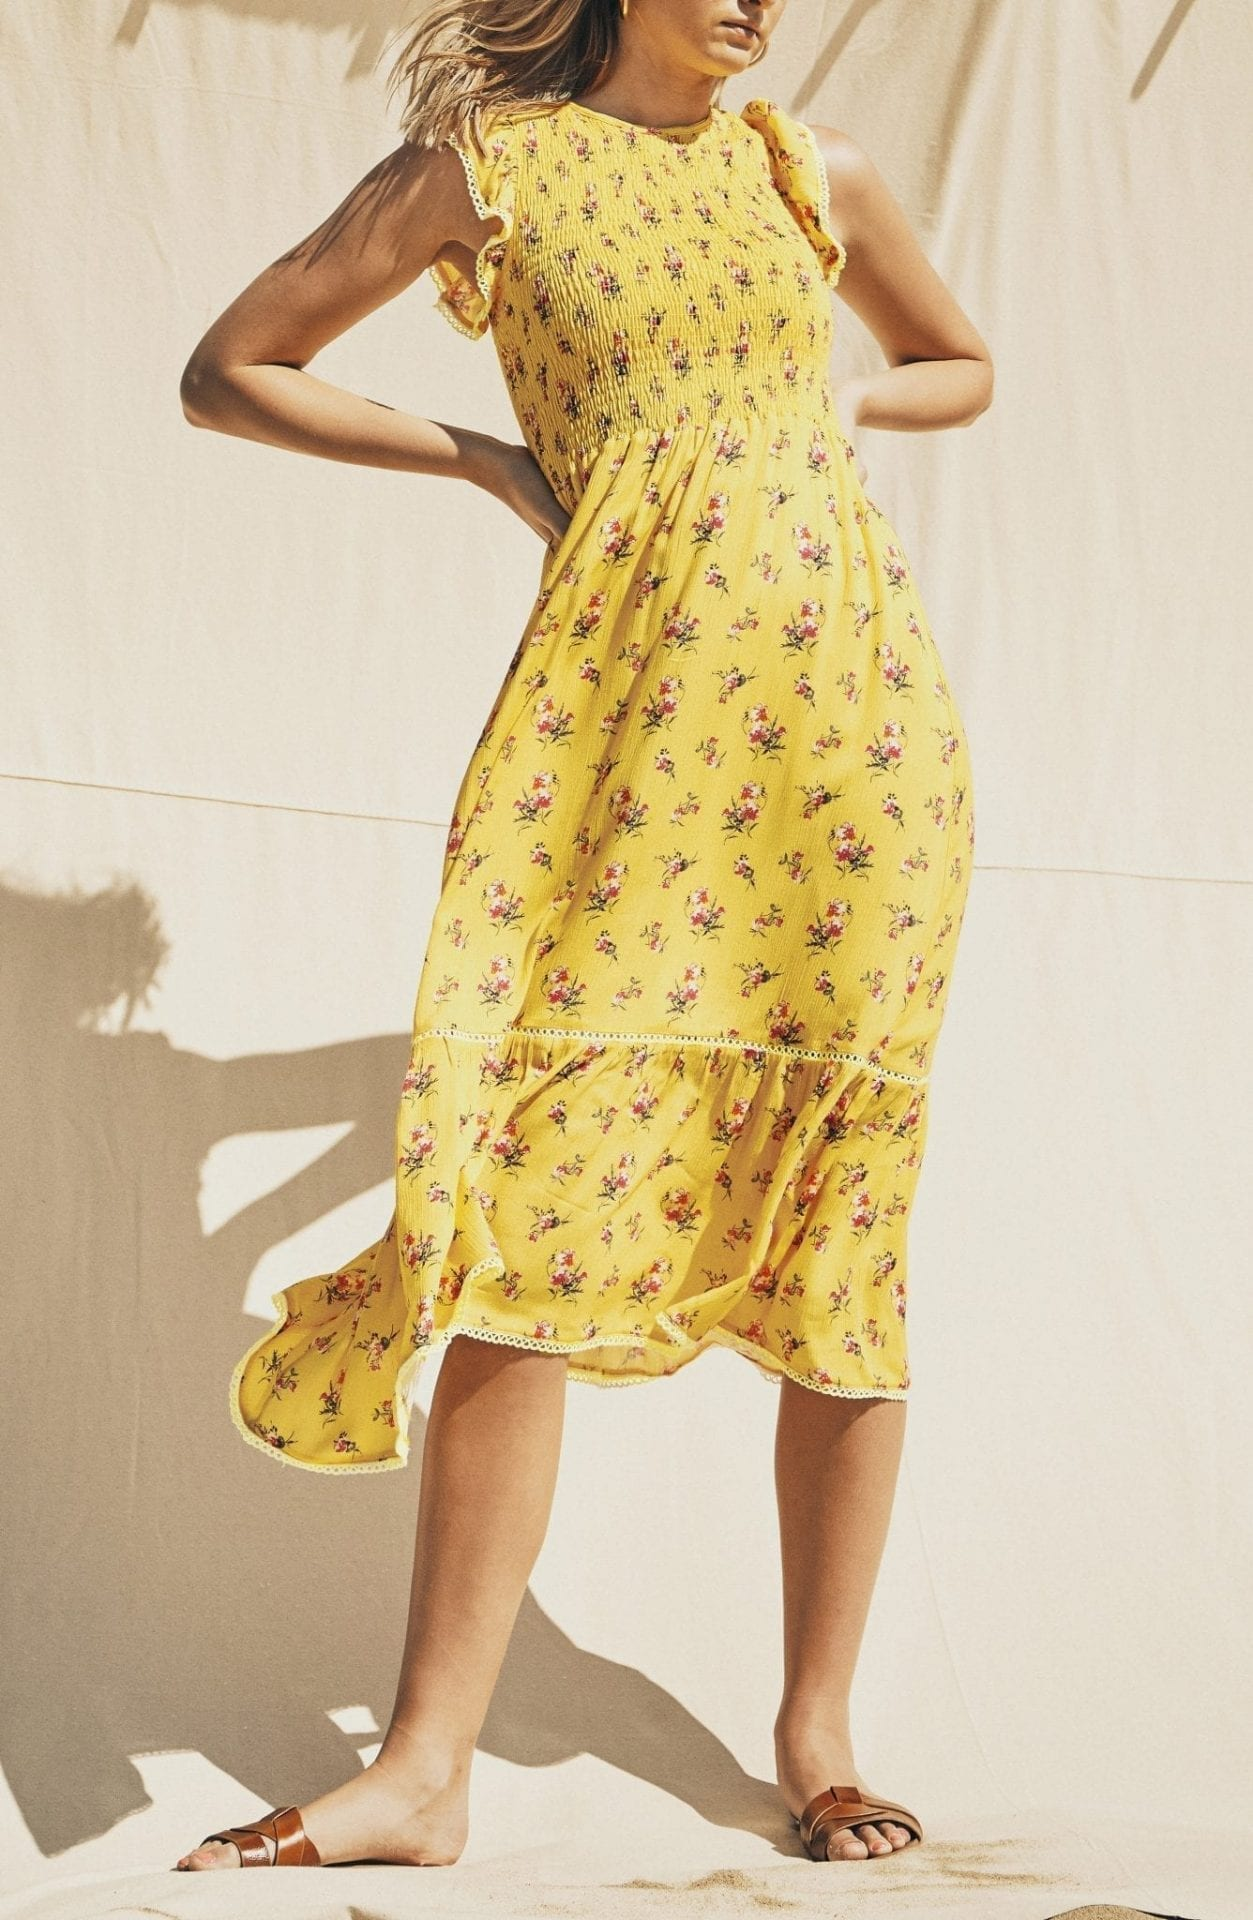 LOST + WANDER Mango Tango Floral Smocked Sun Dress